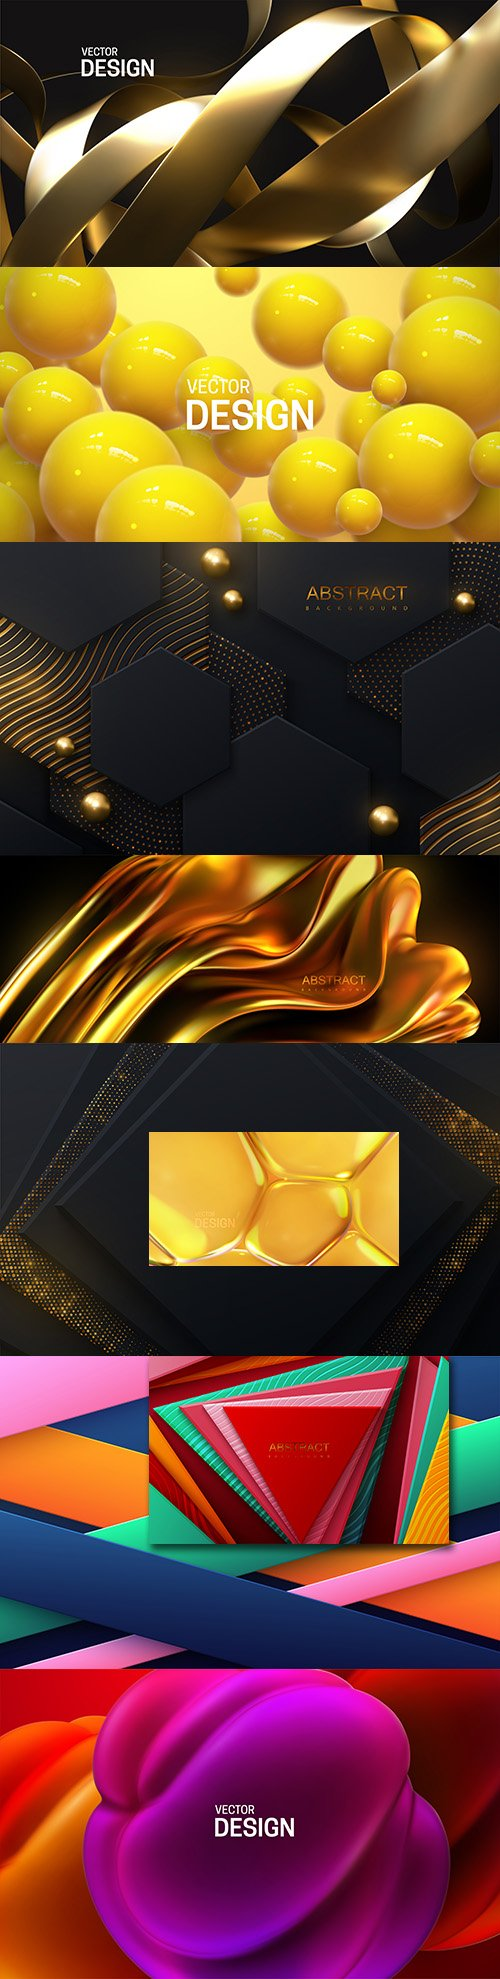 Abstract geometric background with gold and colored concentric spheres 2